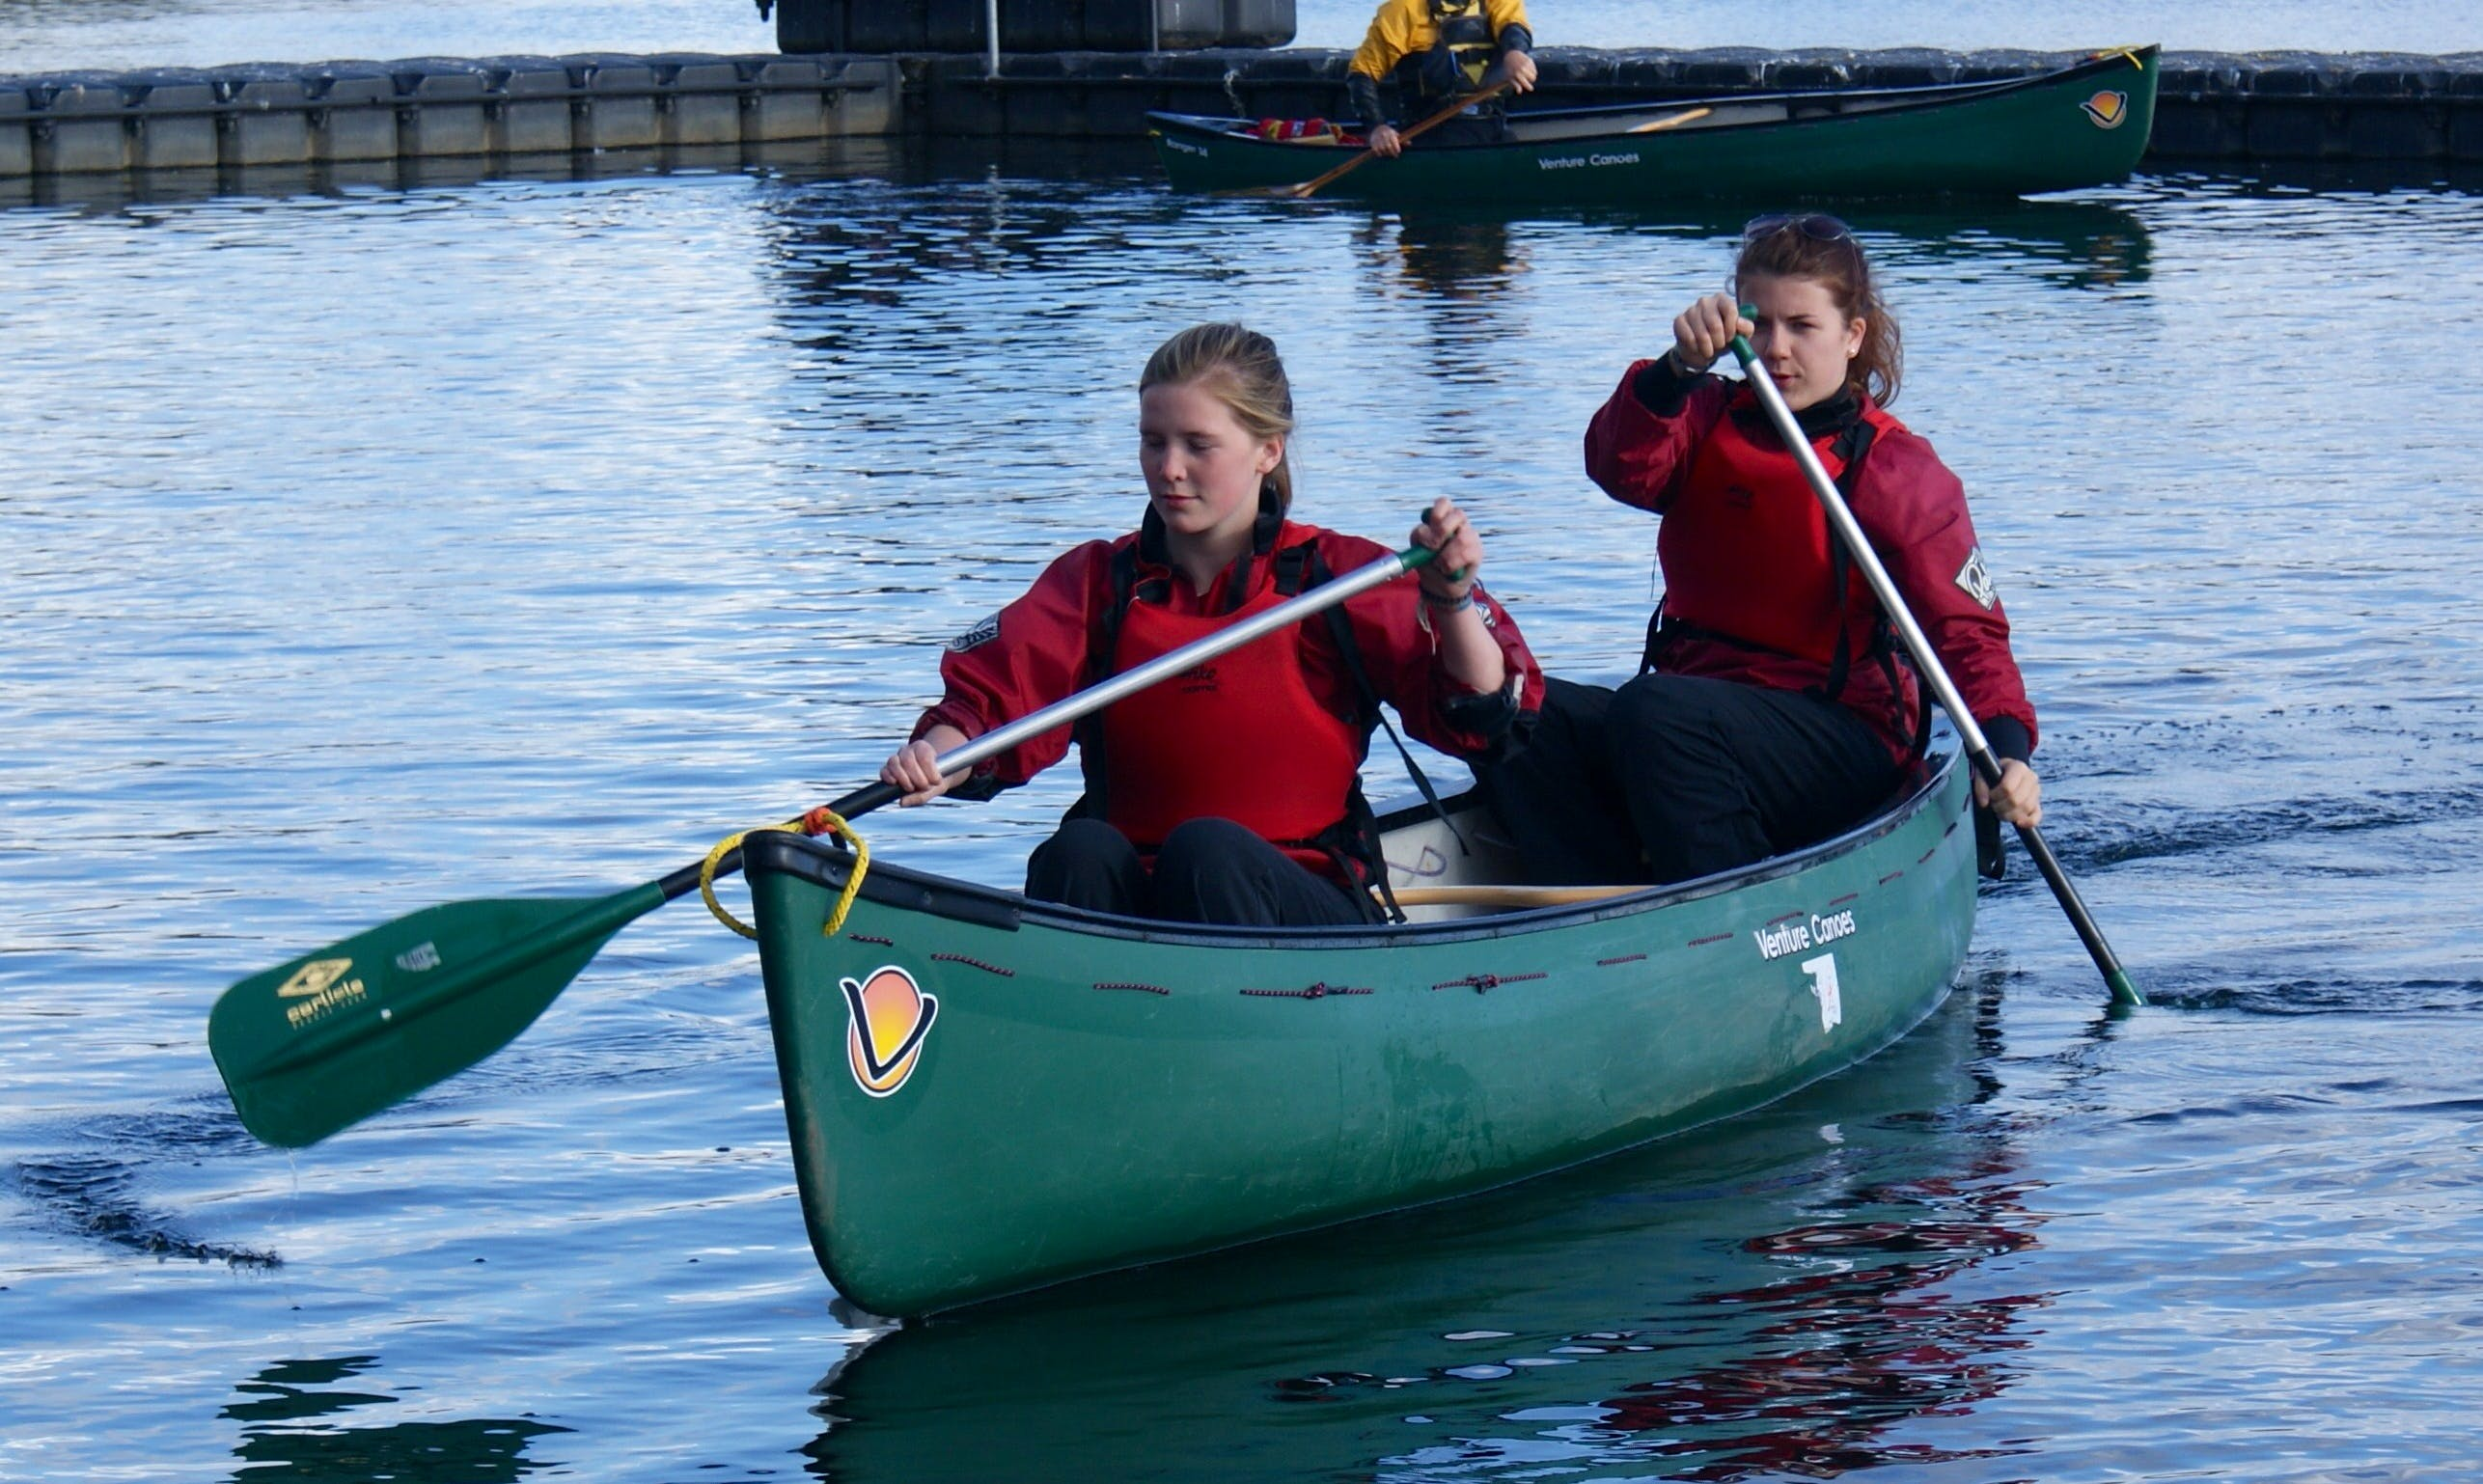 Enjoy Canoe Hire and Courses in Banagher, Ireland